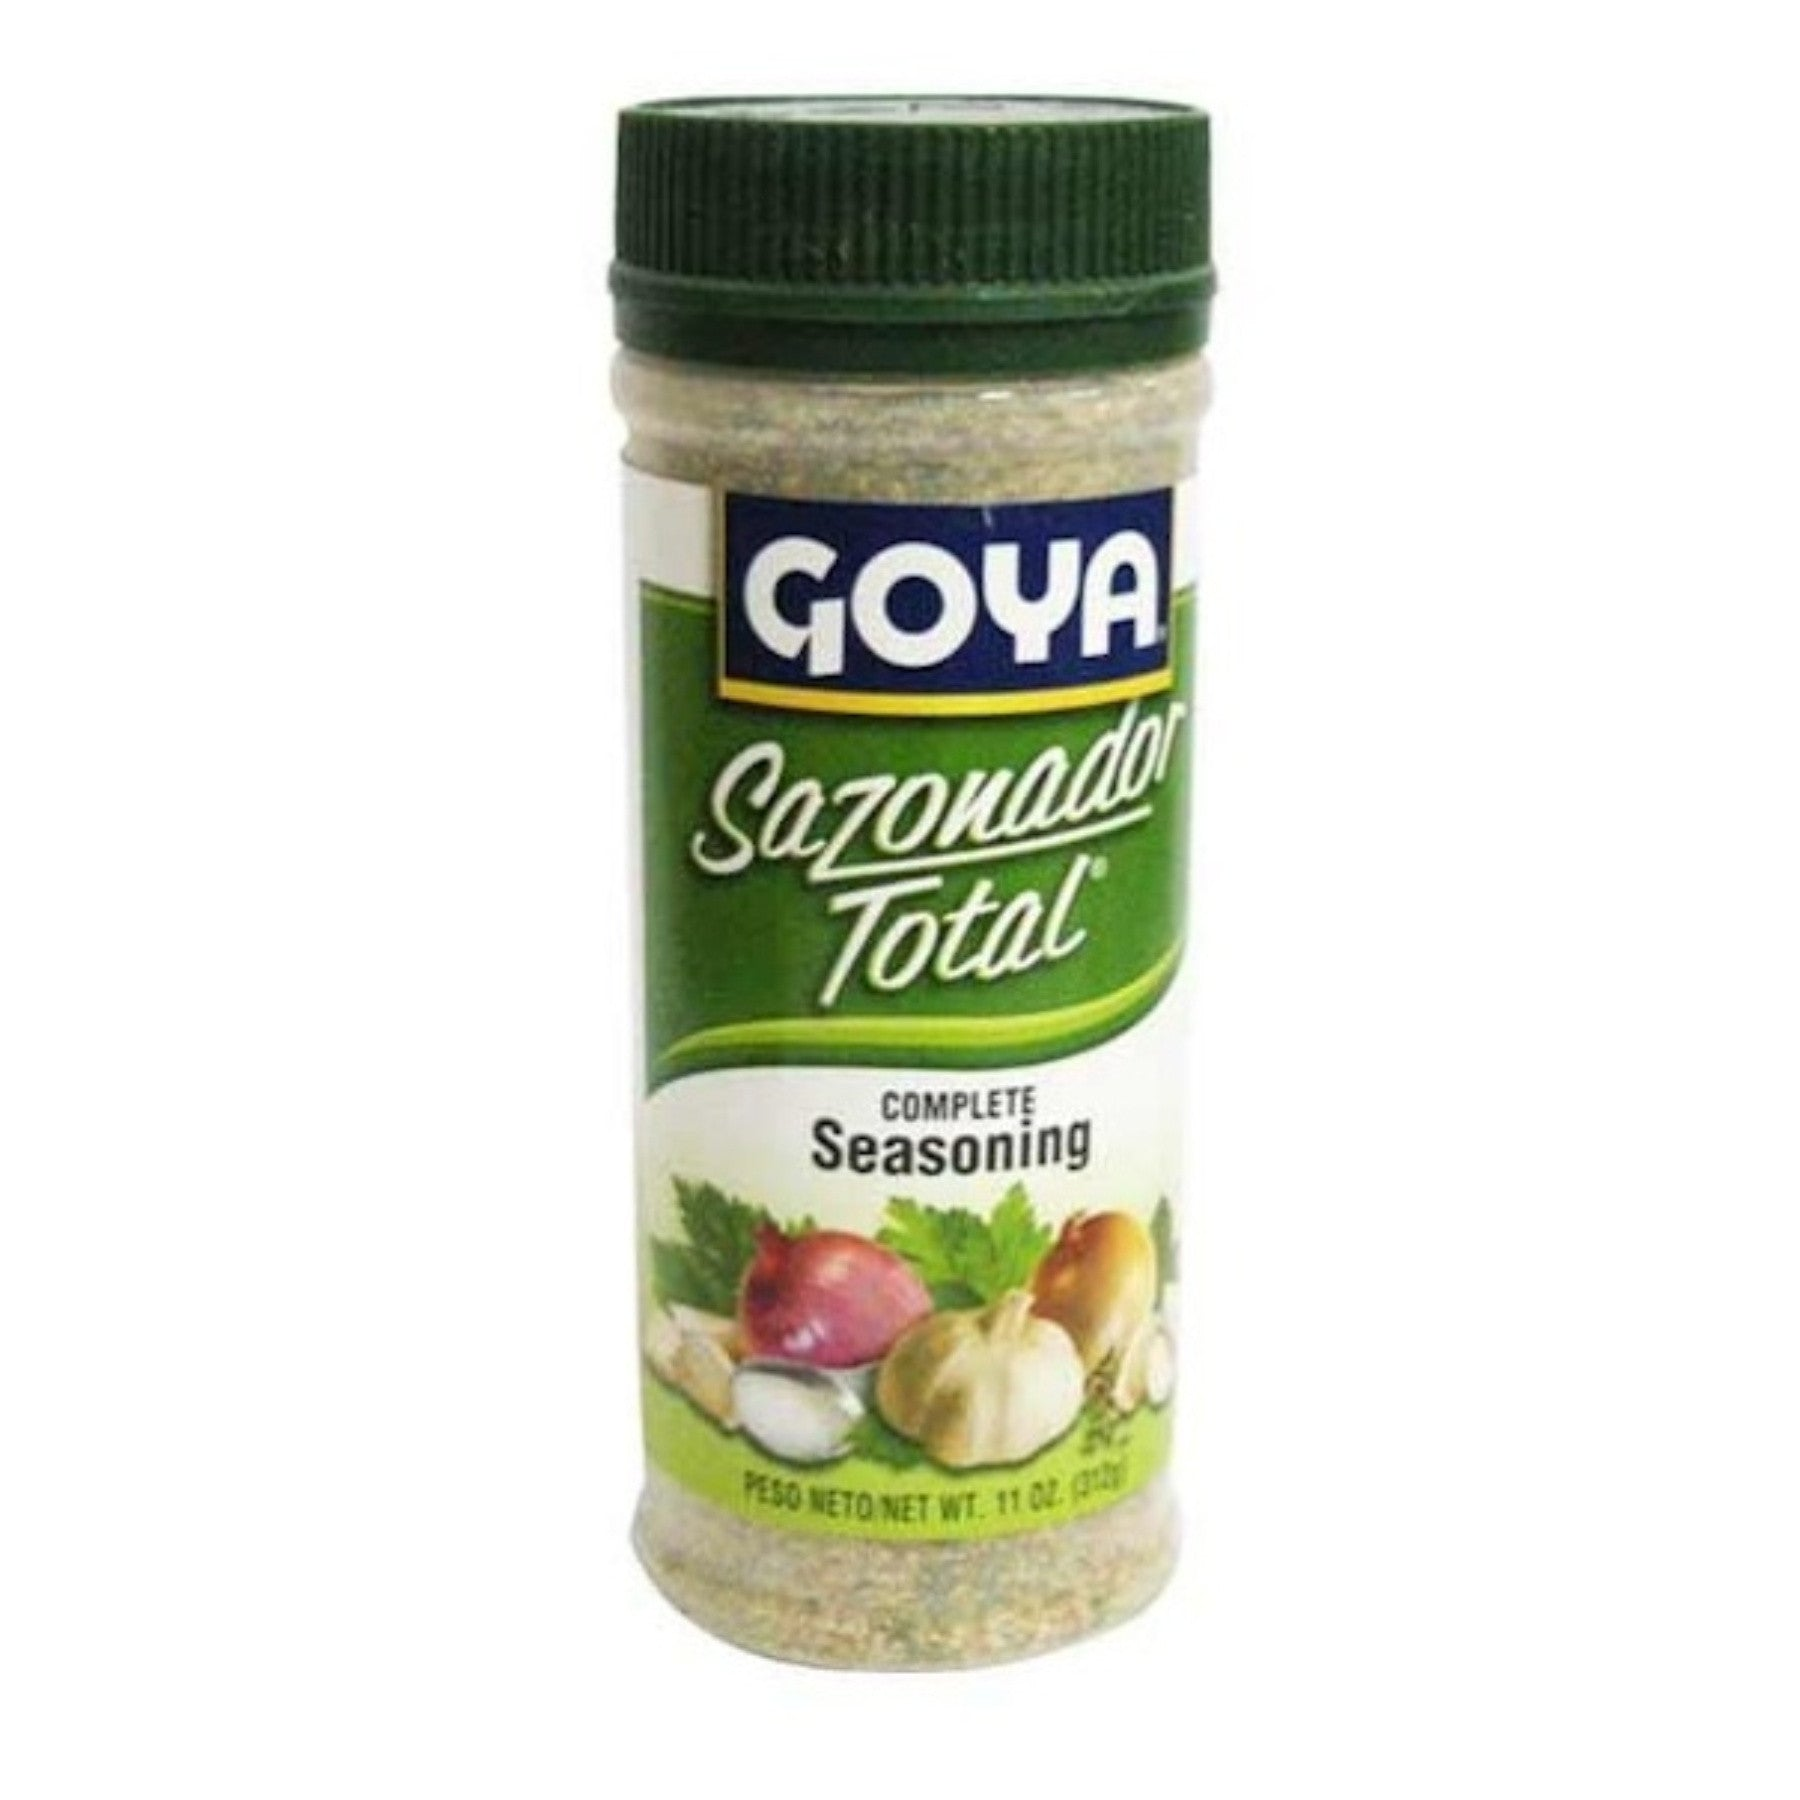 Goya Sazondr Complete Seasoning, 11 OZ (Pack of 12)